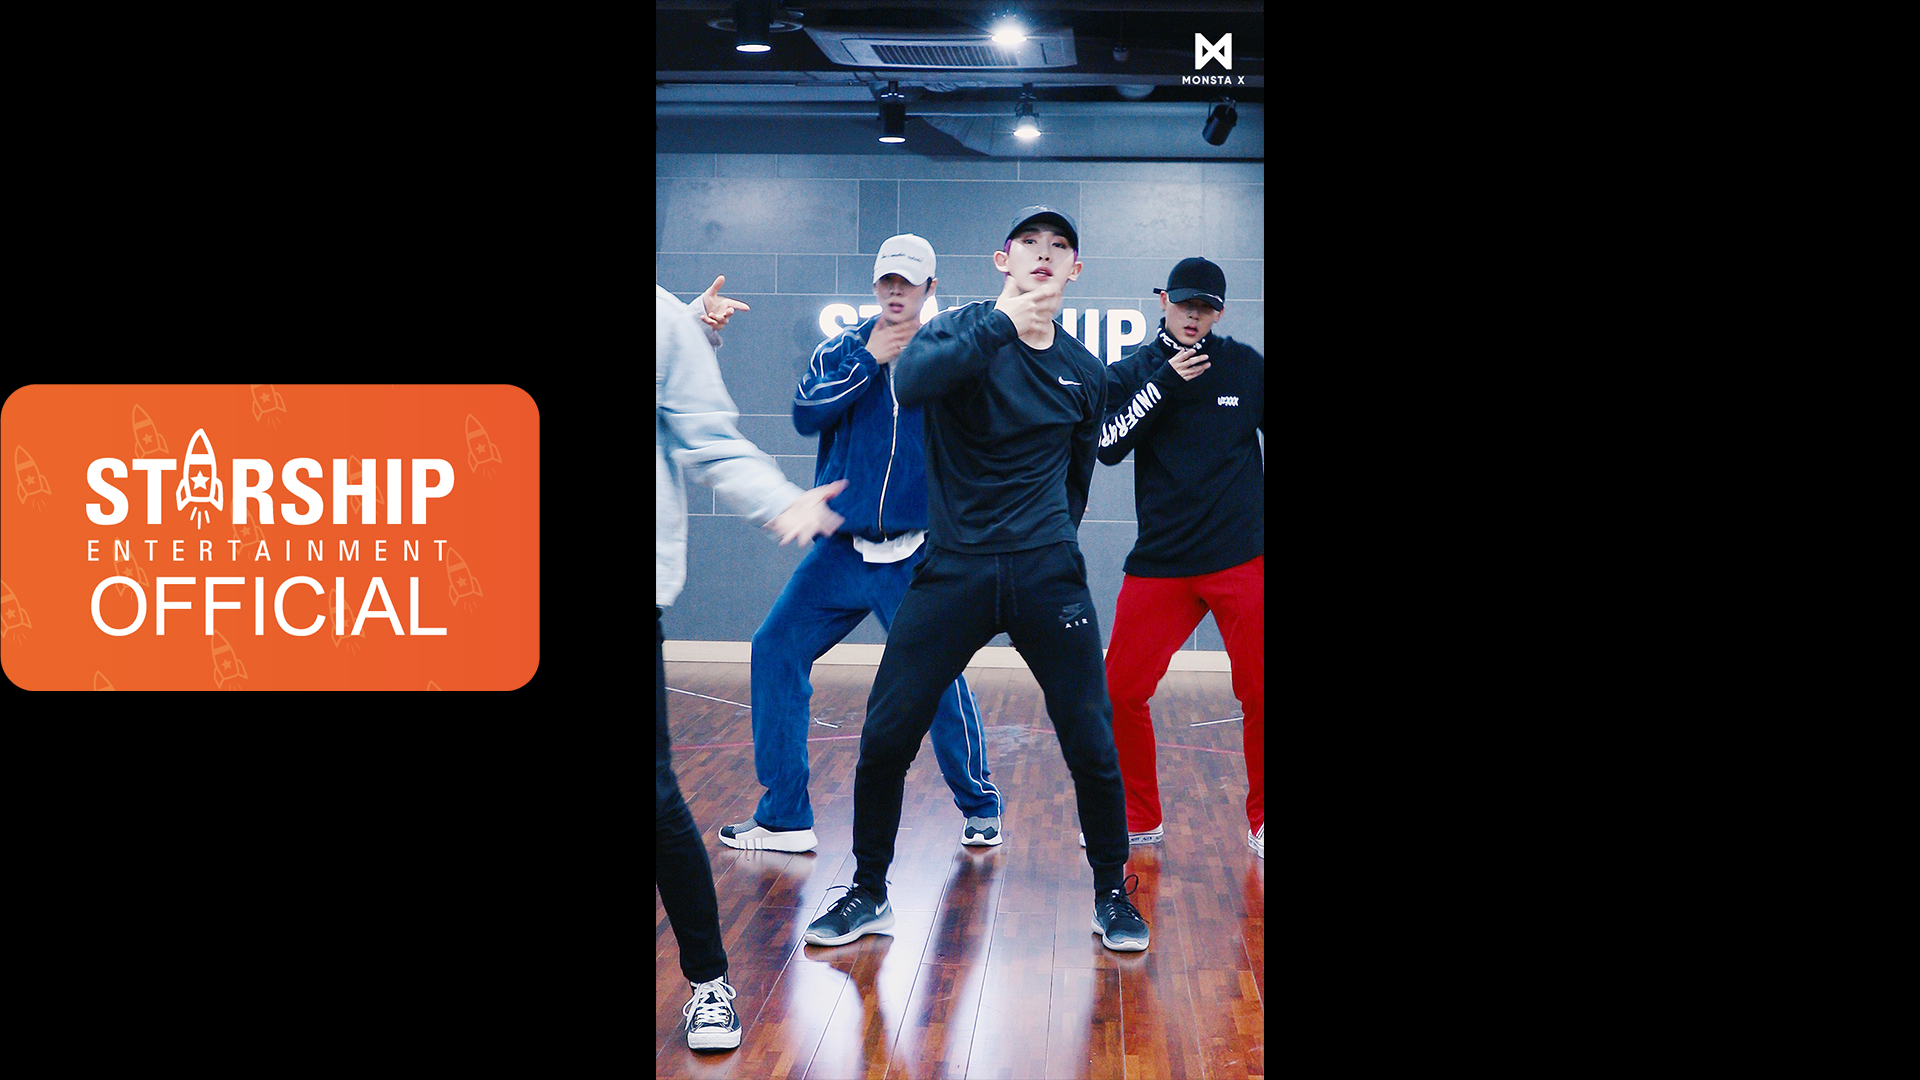 [WONHO][Dance Practice] 몬스타엑스 (MONSTA X) - 'DRAMARAMA' Vertical Video